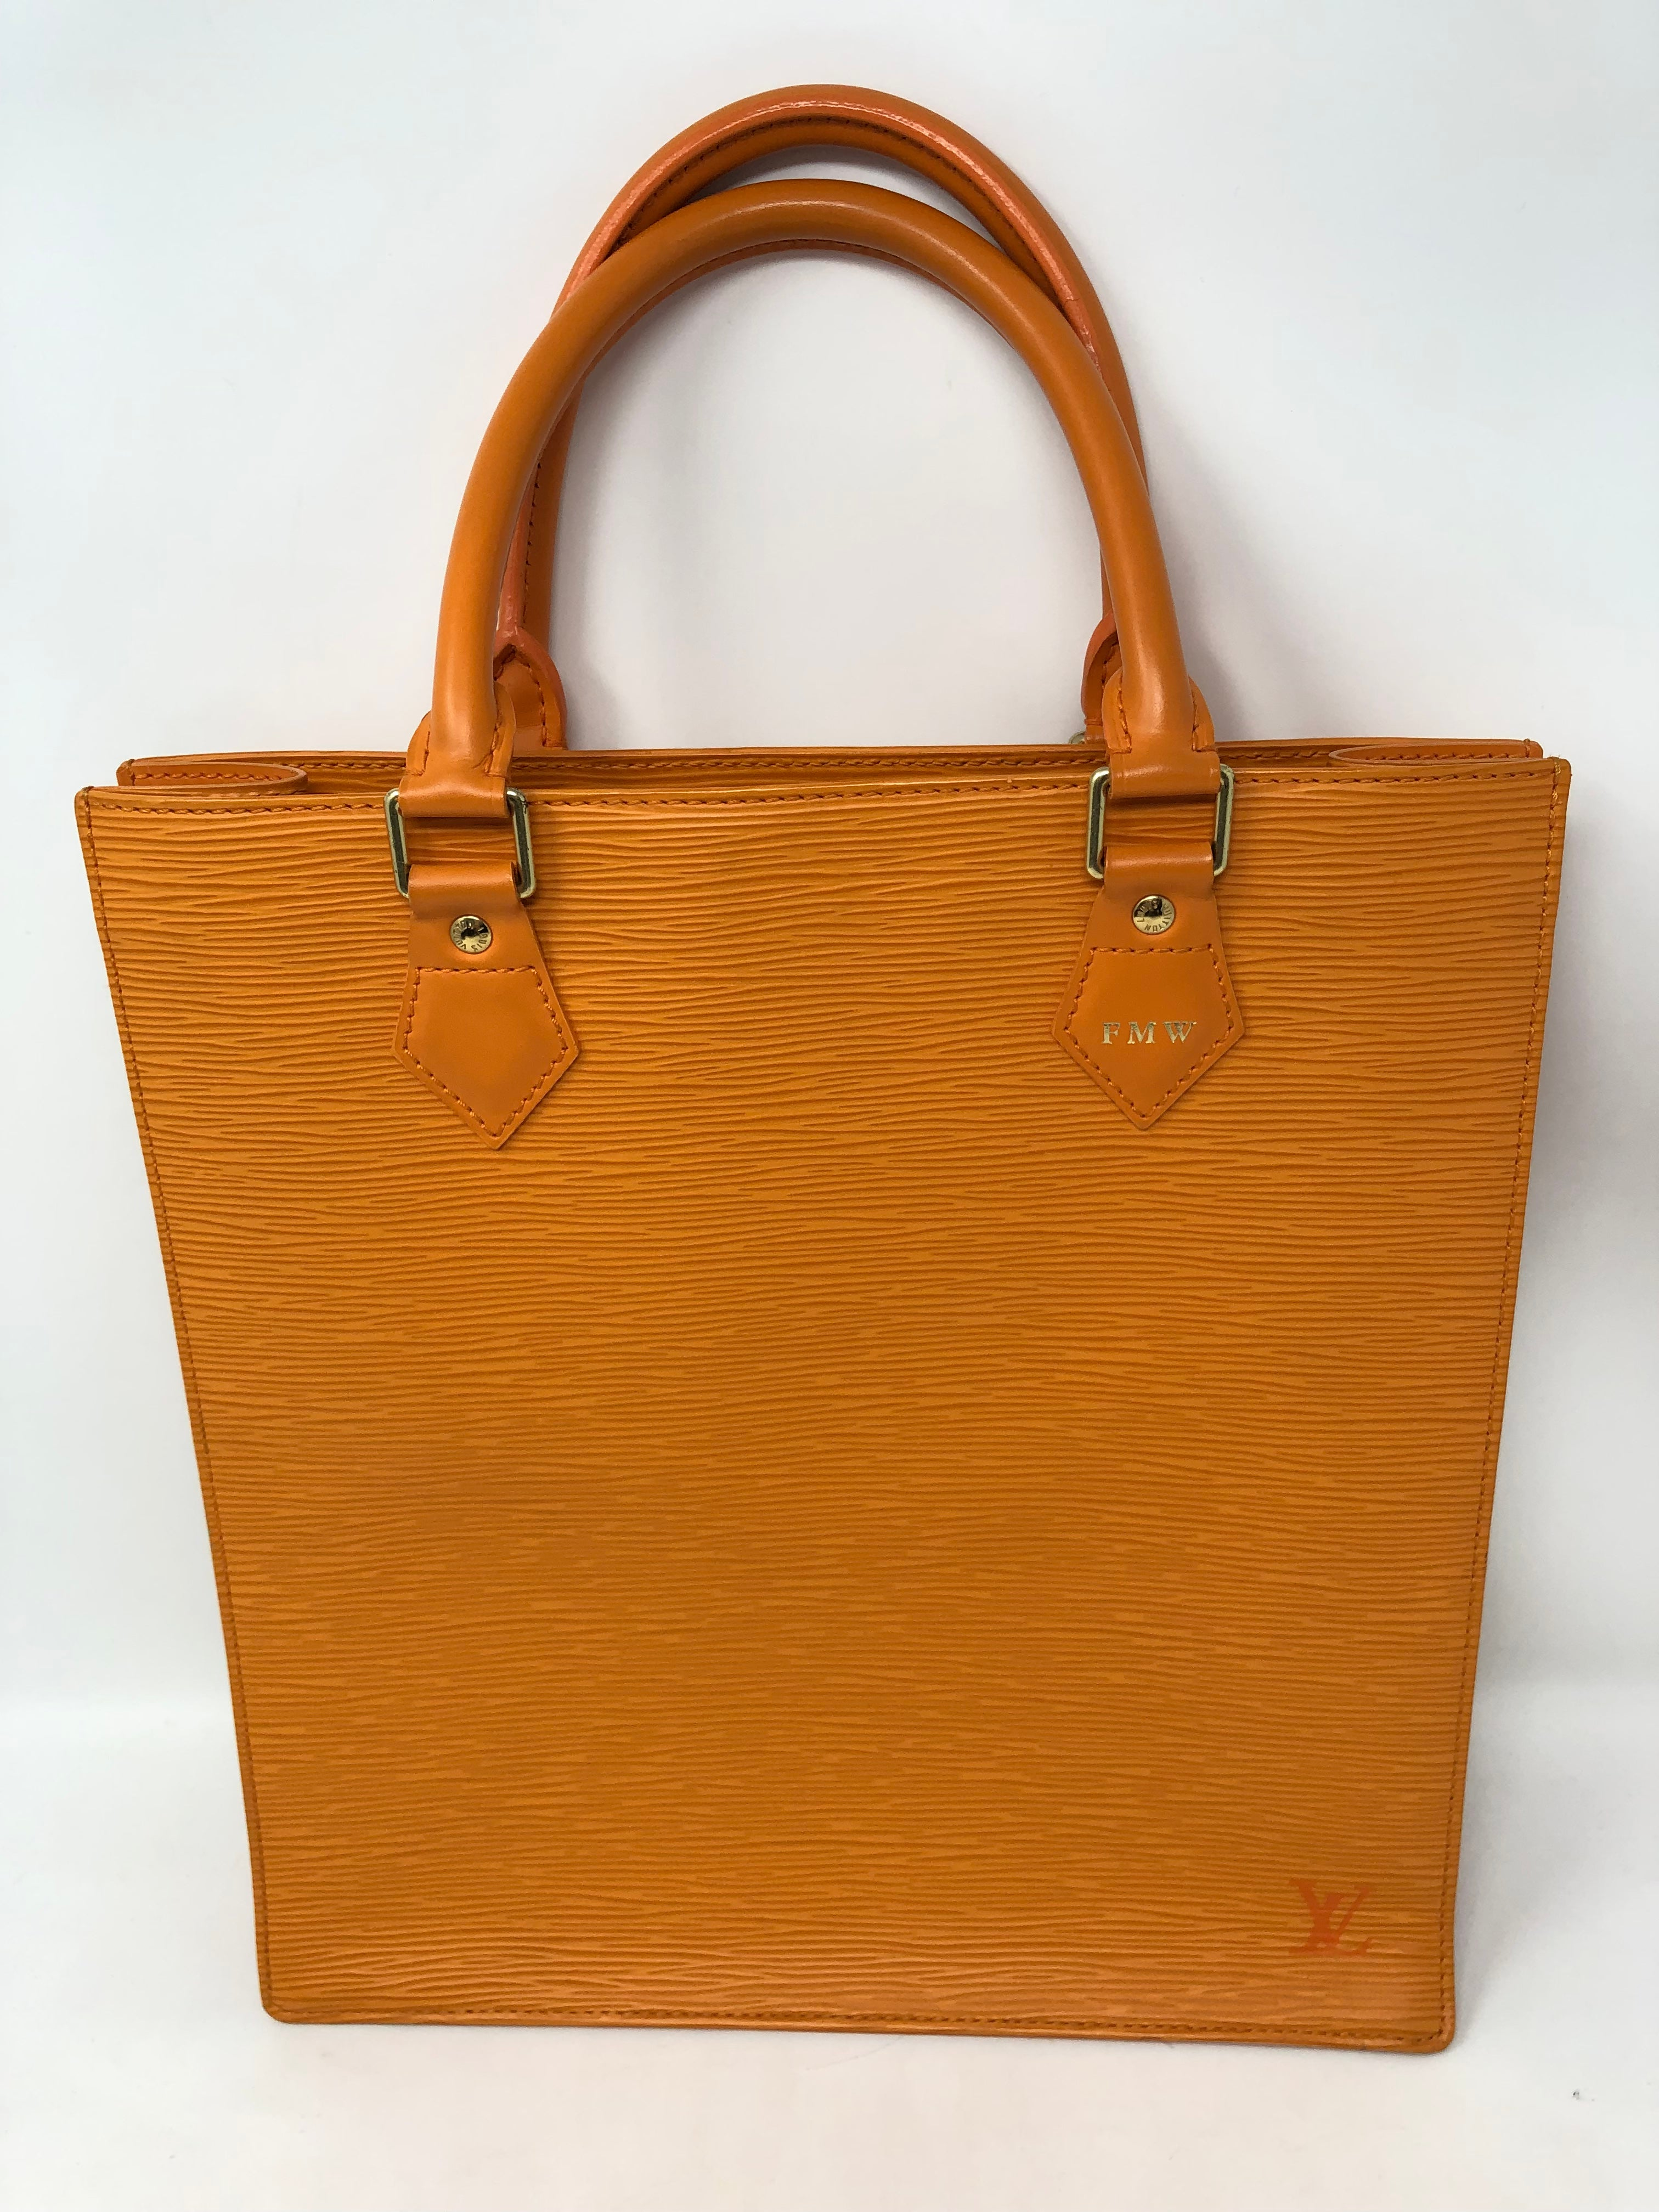 8a16dc4d7f78a Louis Vuitton Sac Plat Epi Orange For Sale at 1stdibs